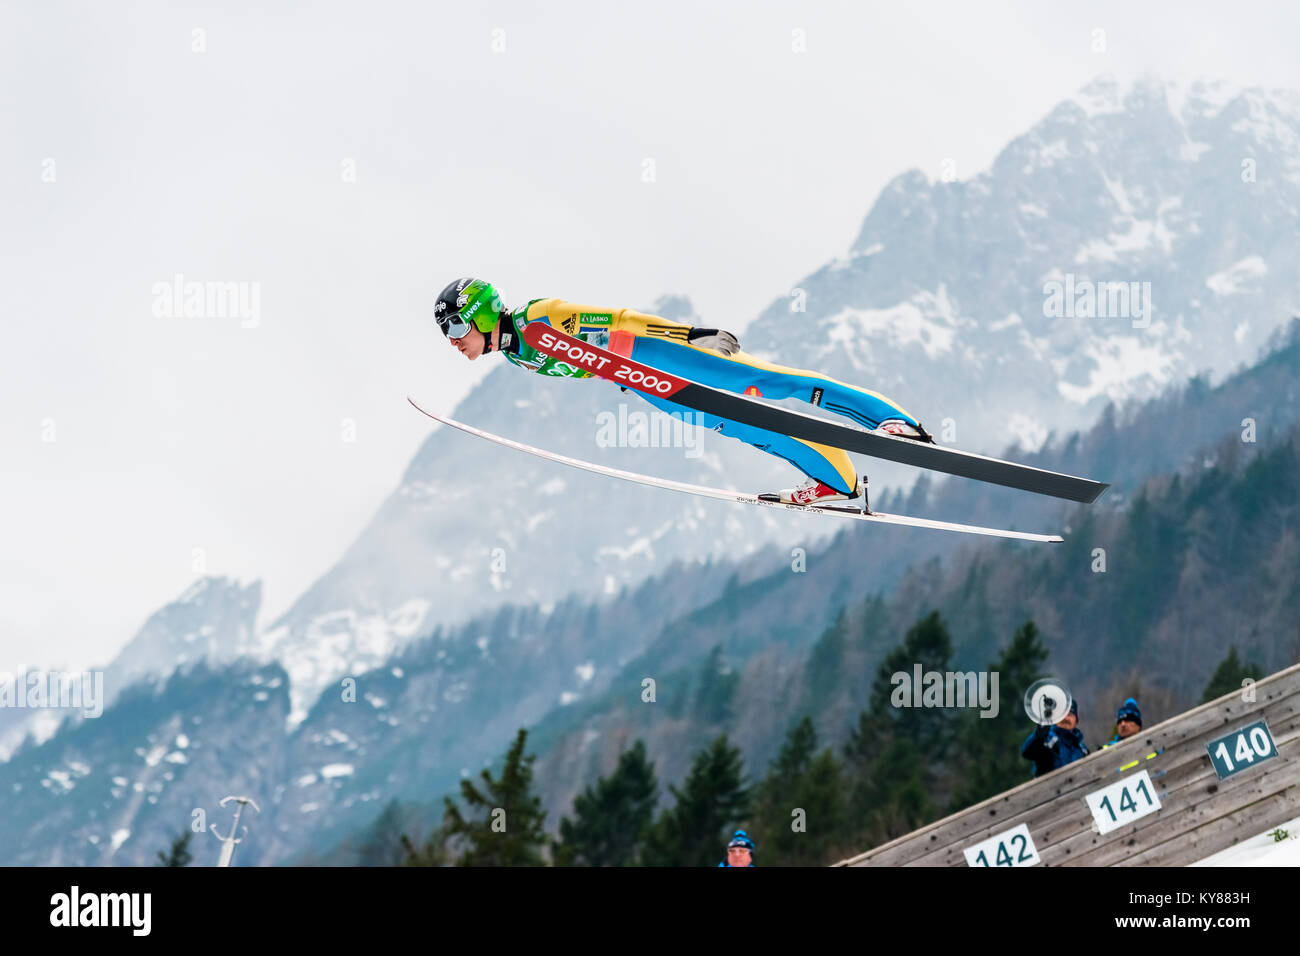 Flying Jurij Tepeš in Planica 2017, Slovenia, FIS Ski Jumping World Cup finals - Stock Image